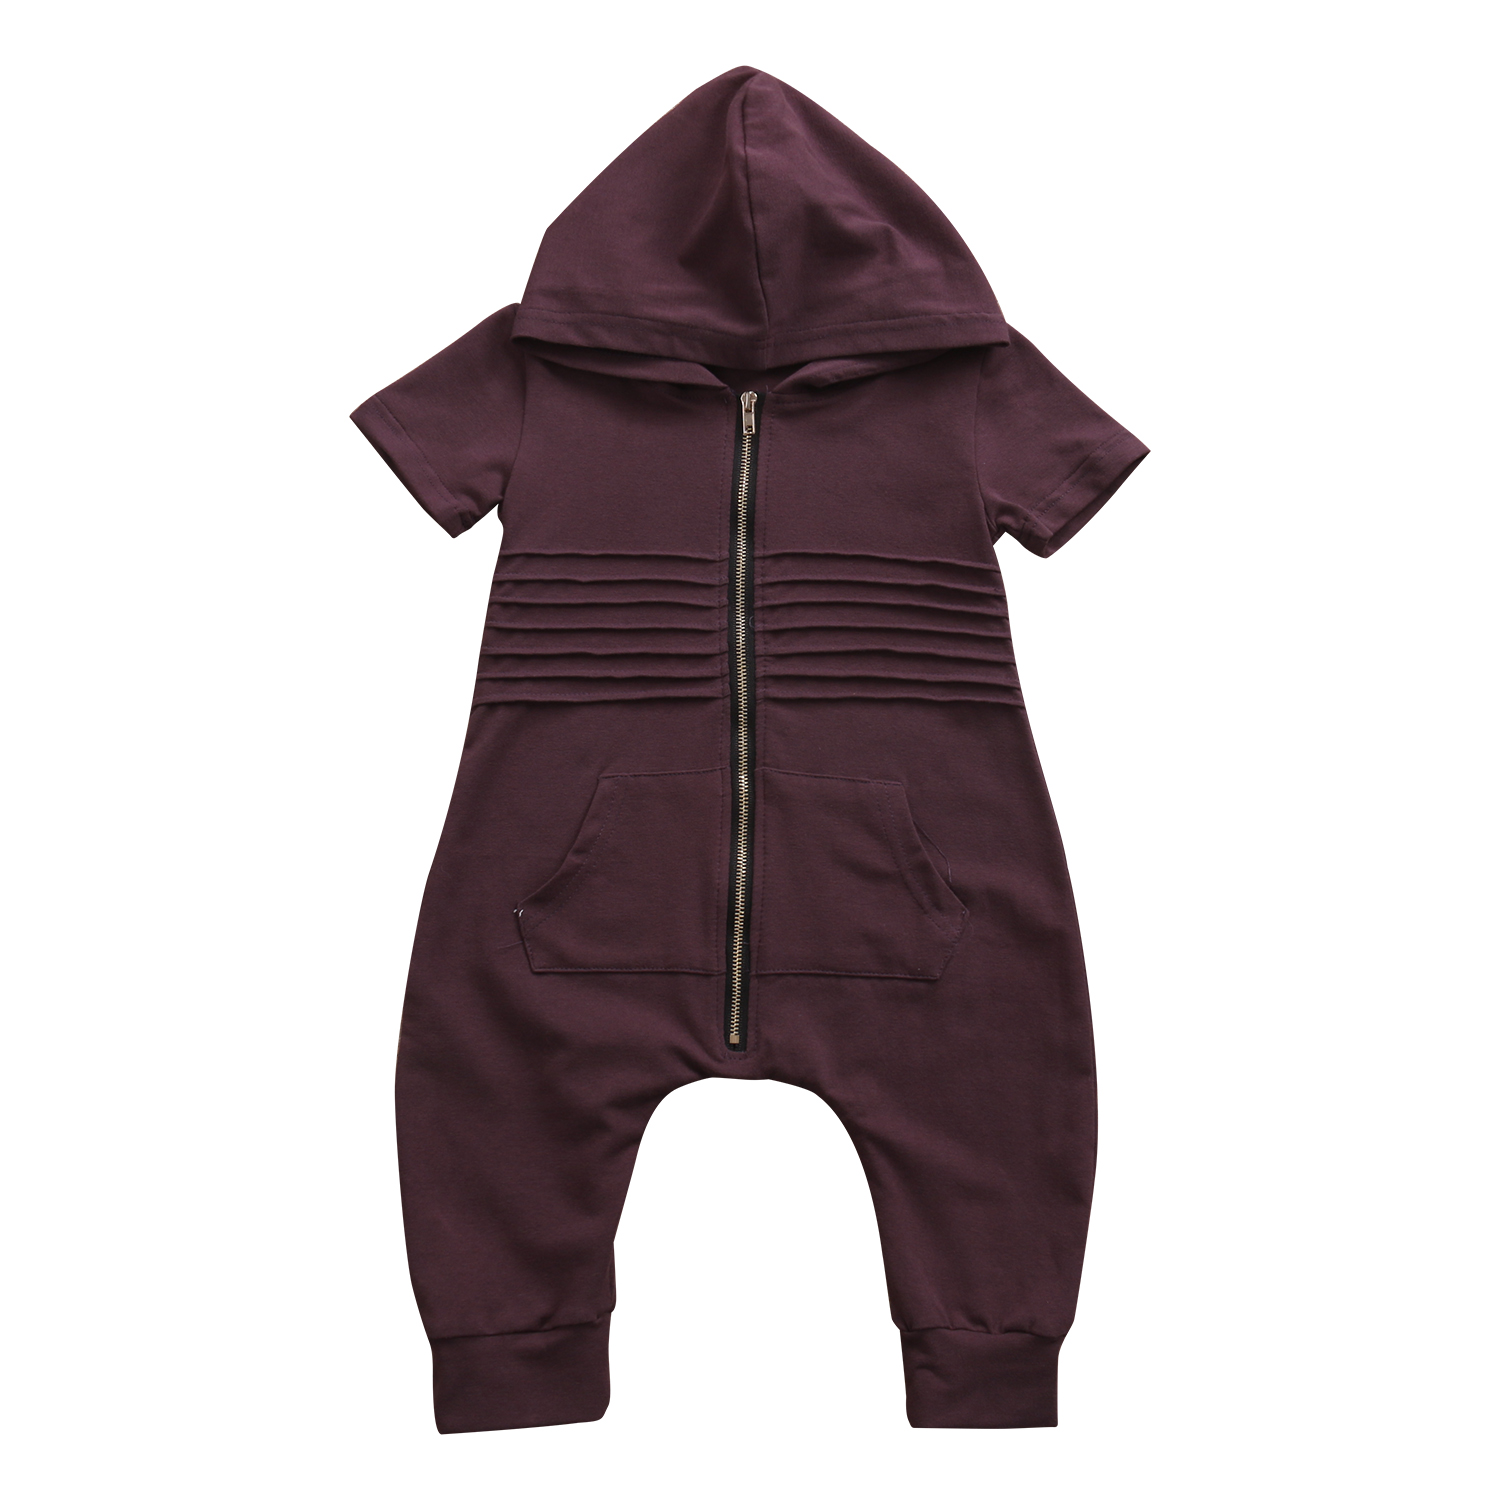 Hot Babies Casual Toddler Infant Newborn Baby Boys Hooded Zipper Romper Jumpsuit Playsuit Clothes